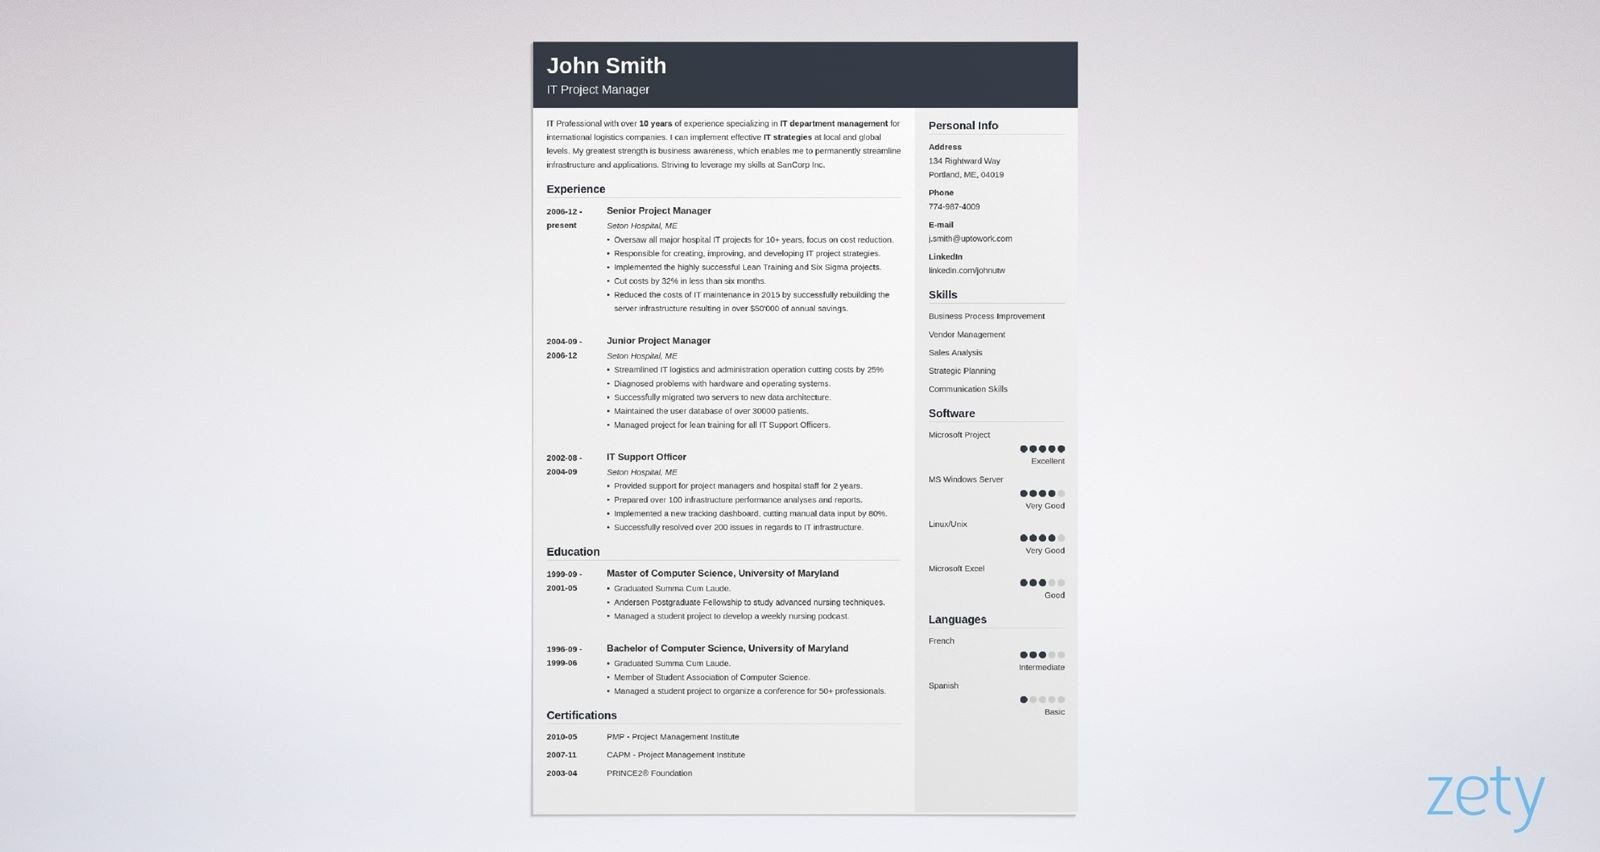 best resume templates for top picks to format students pursuing mba social media samples Resume Top Resume Templates 2020